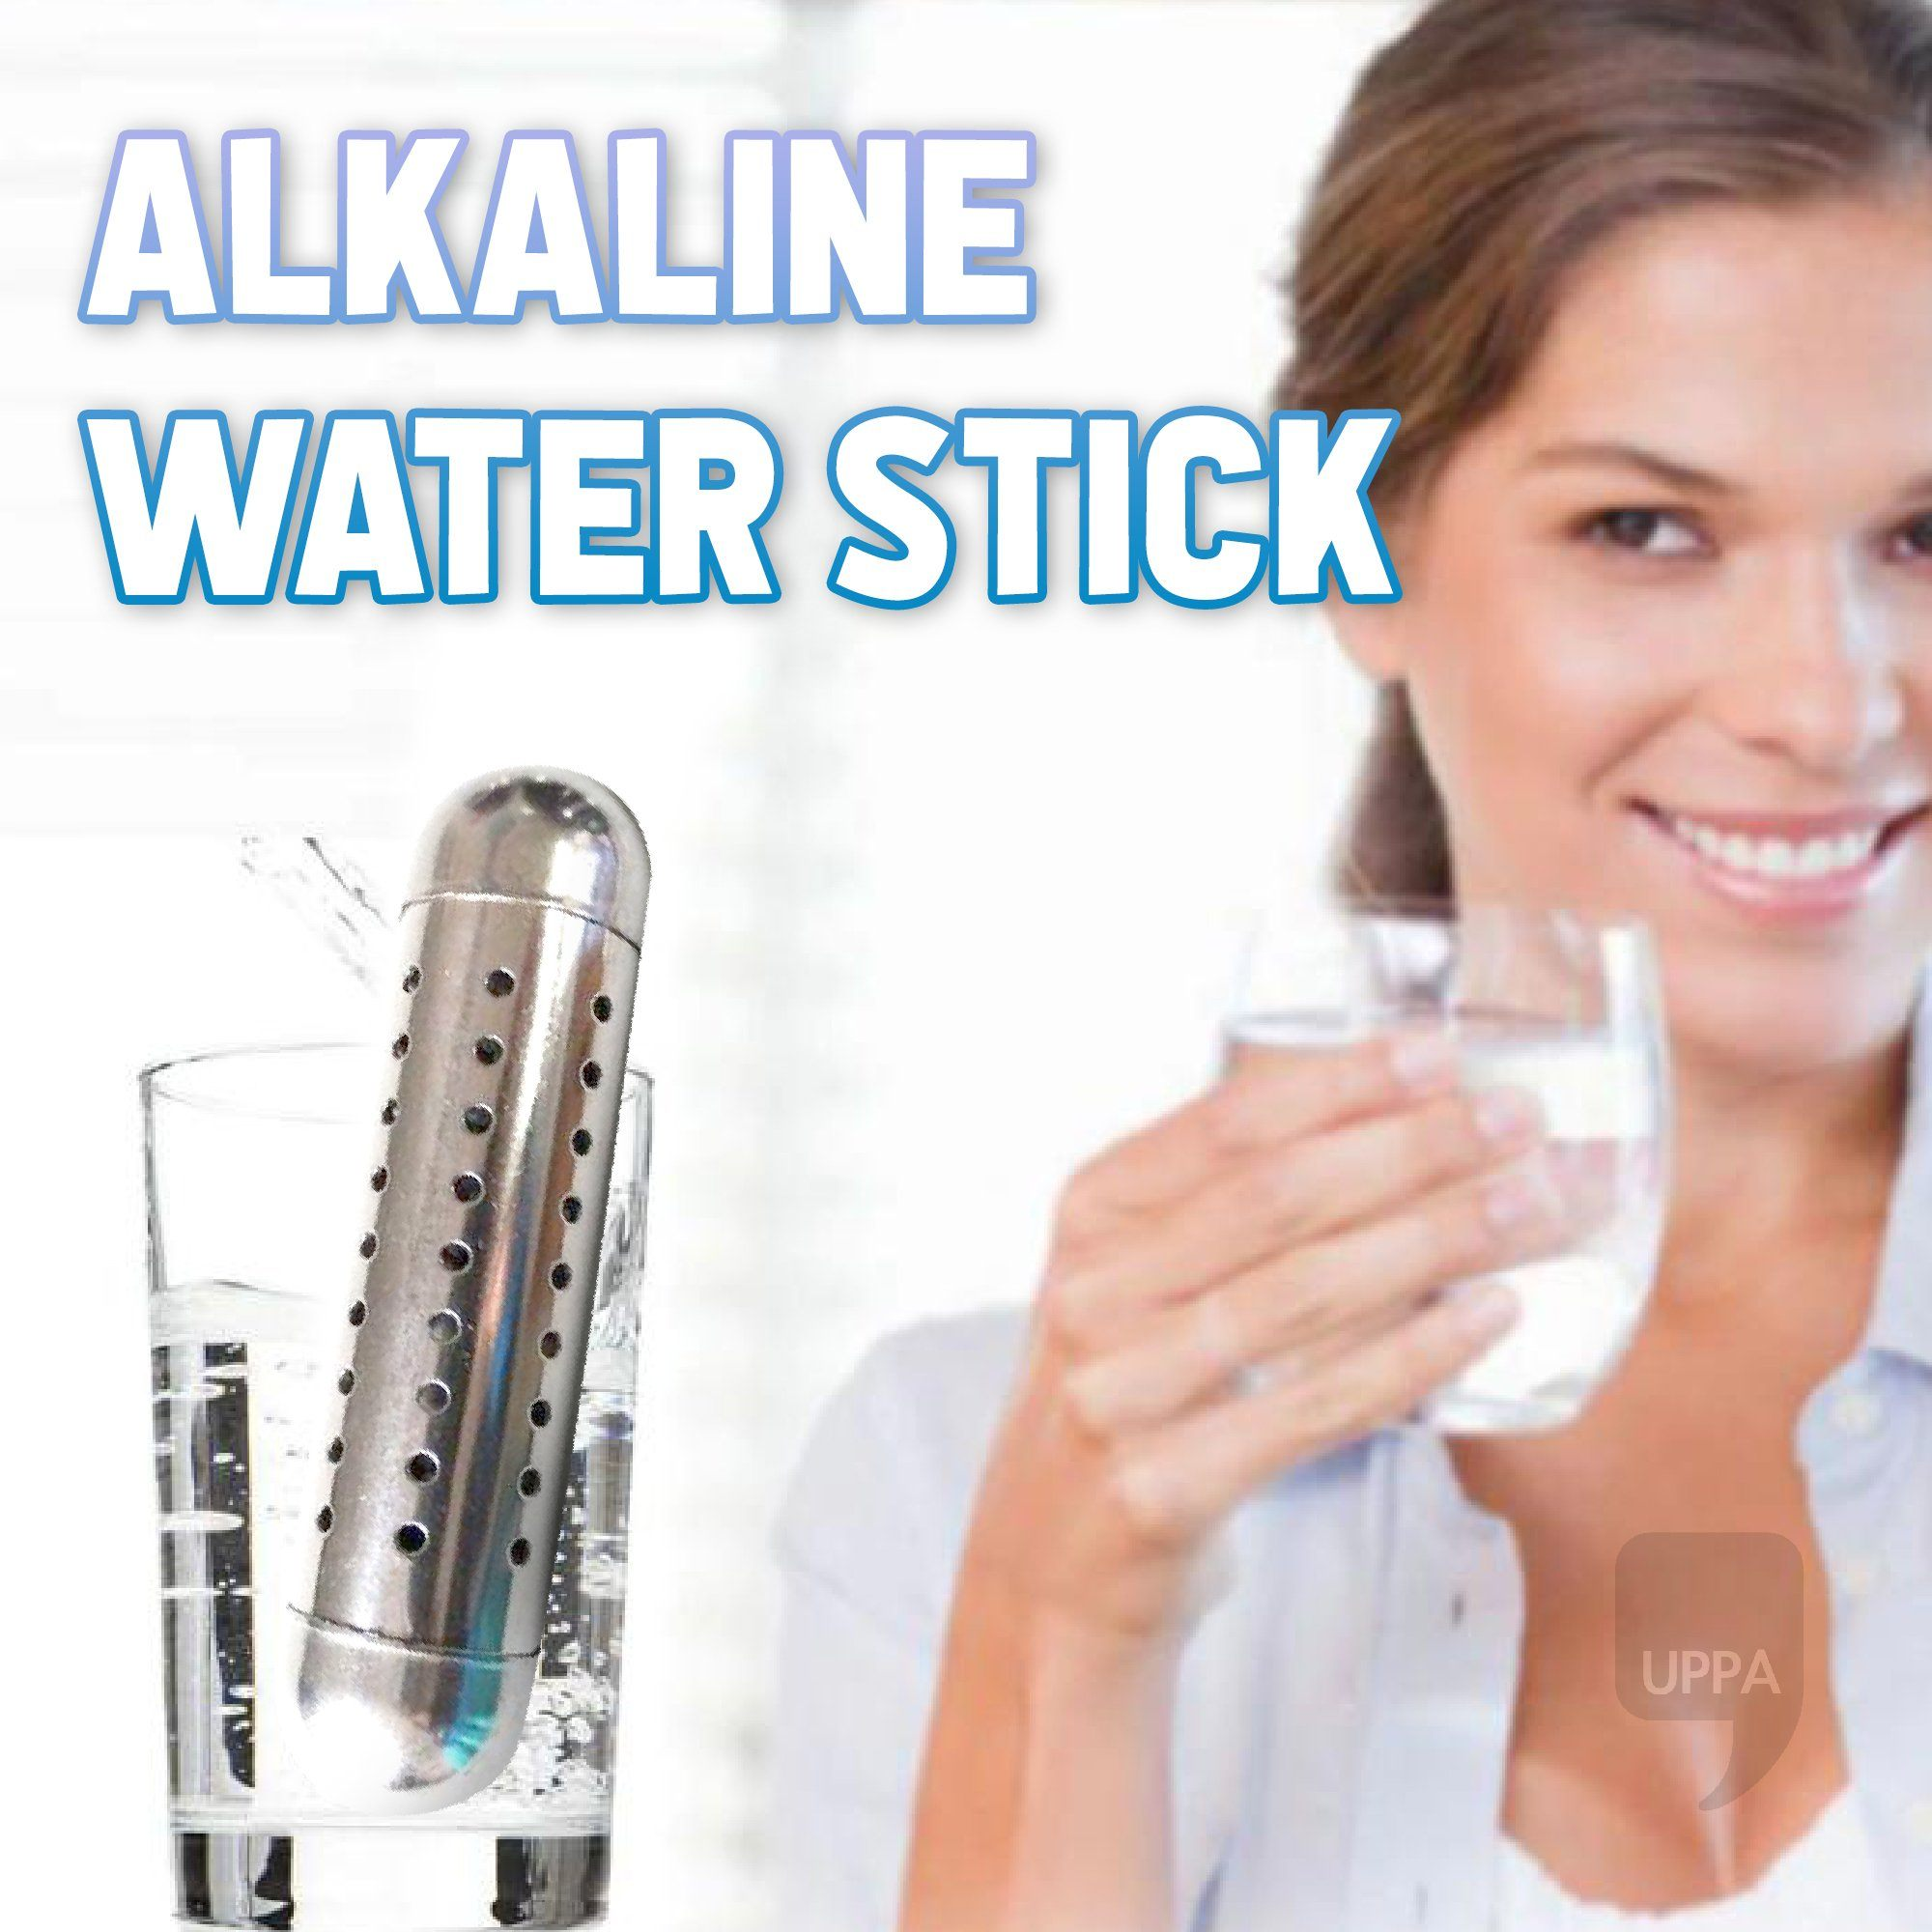 Alkaline Water Stick and Bottle